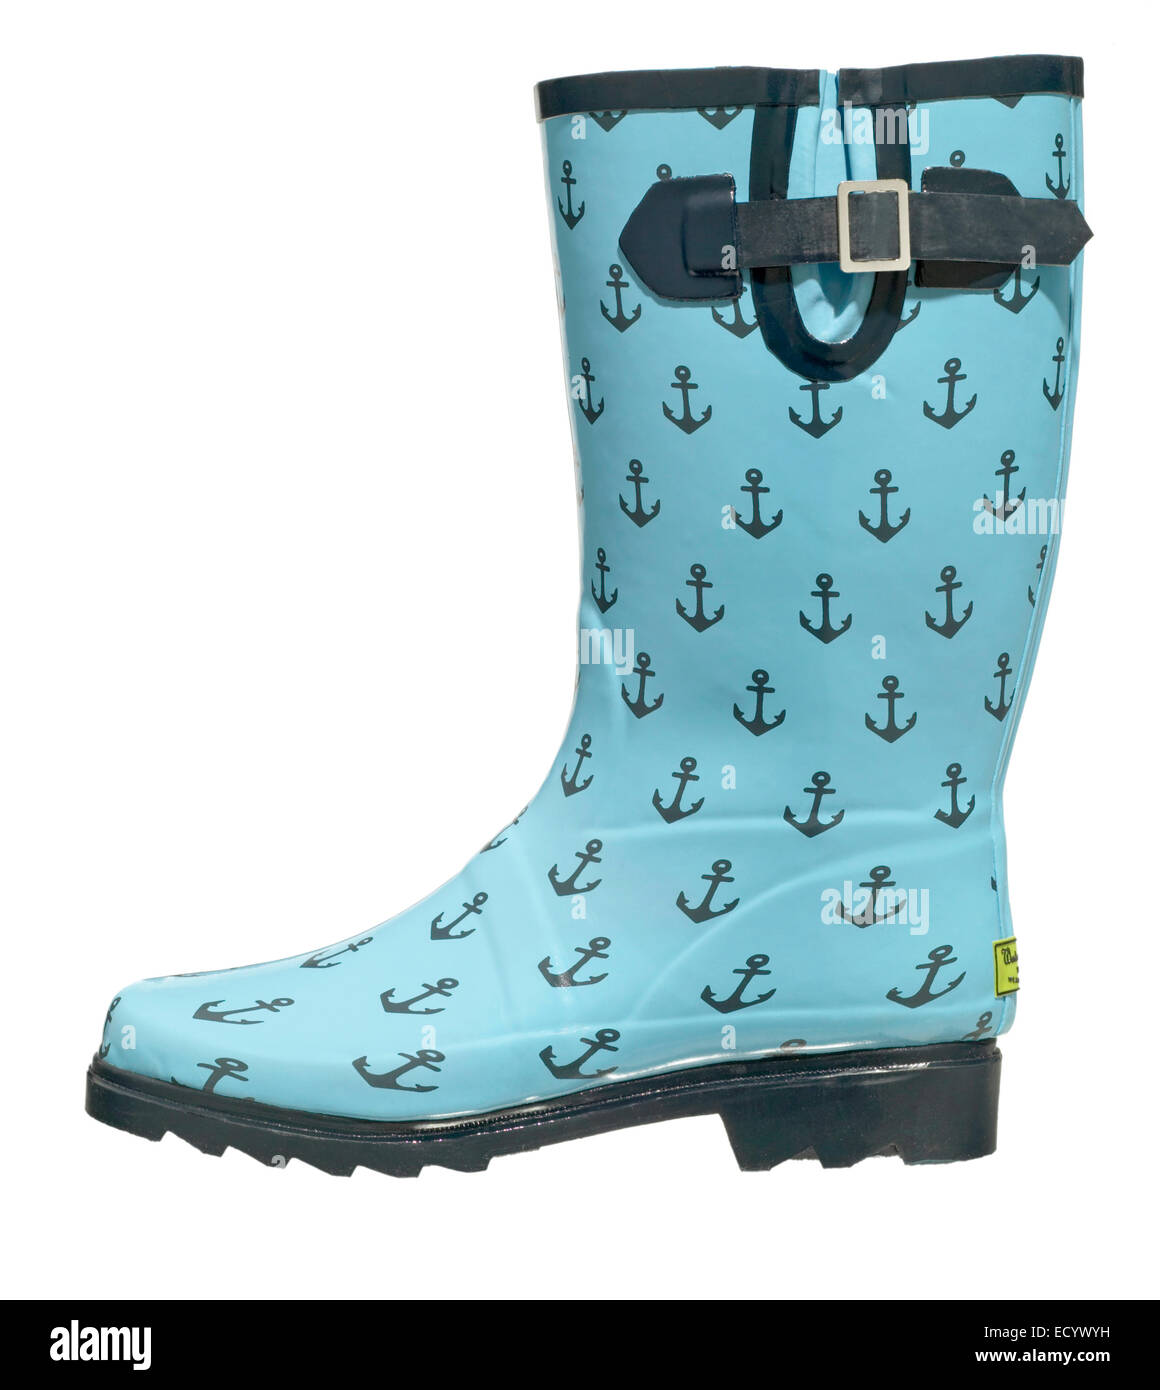 Blue Rubber Boots Stockfotos & Blue Rubber Boots Bilder Alamy